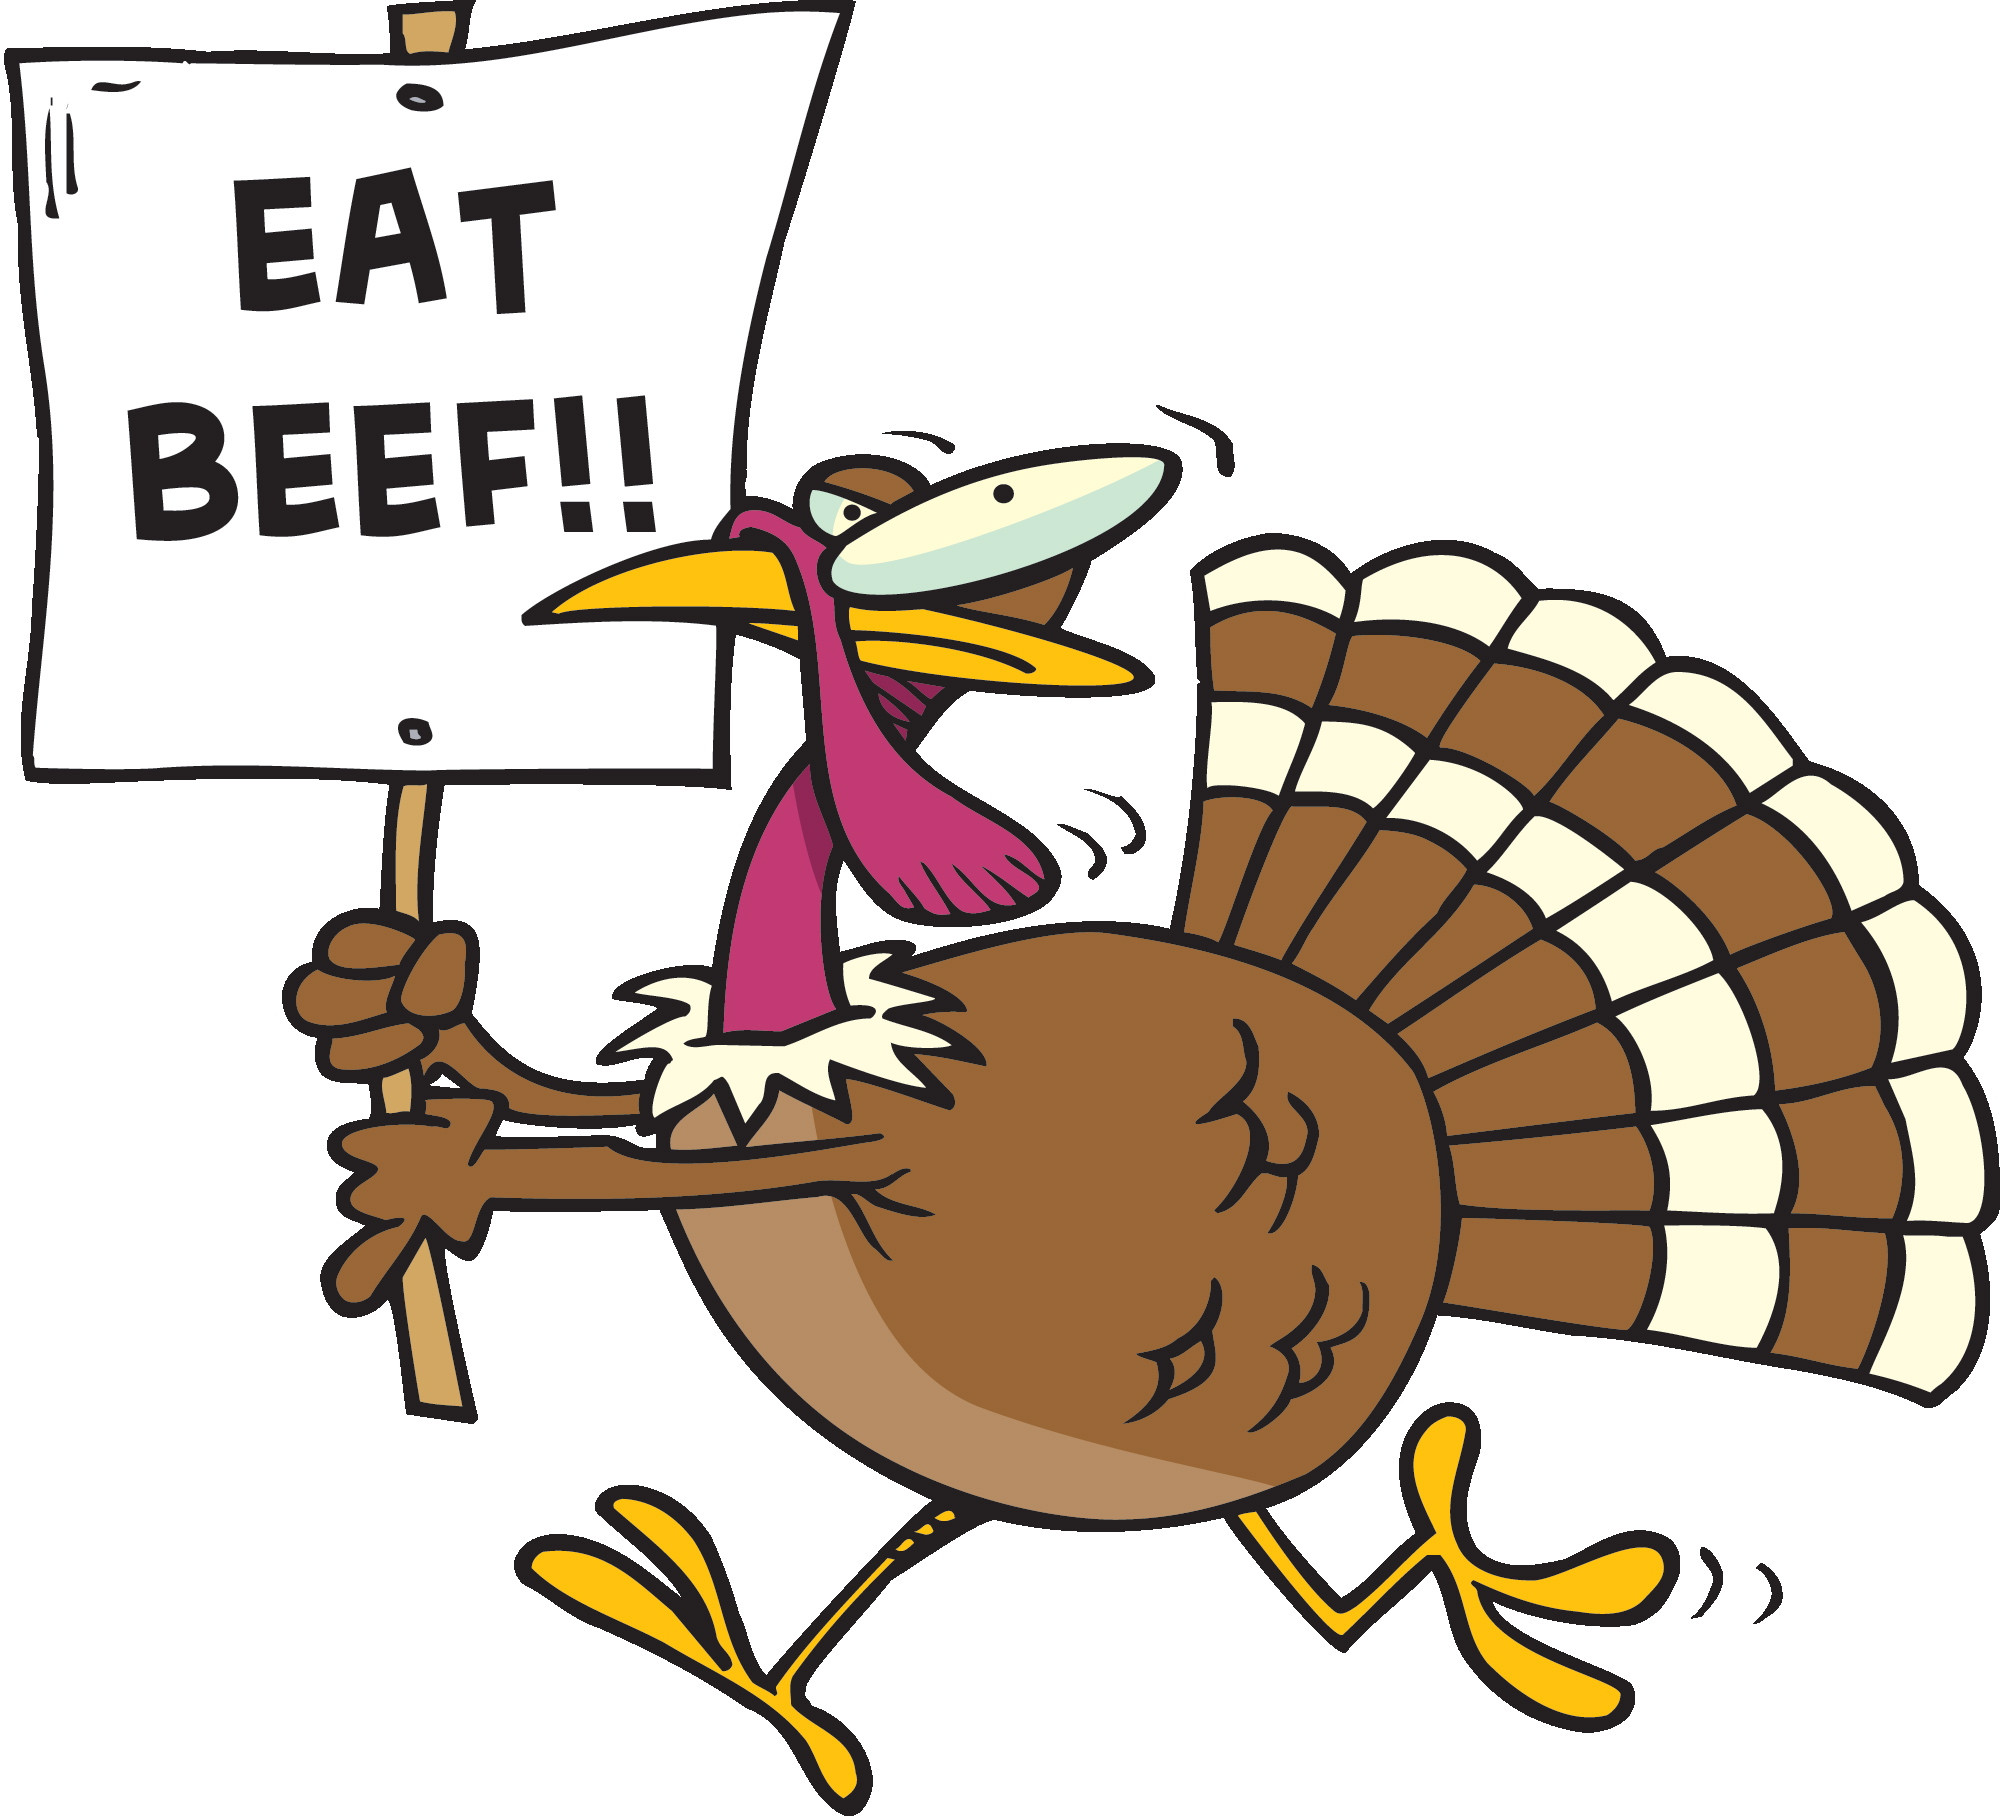 Funny Thanksgiving Turkey Pictures  Eat Beef Funny Turkey Clipart Image